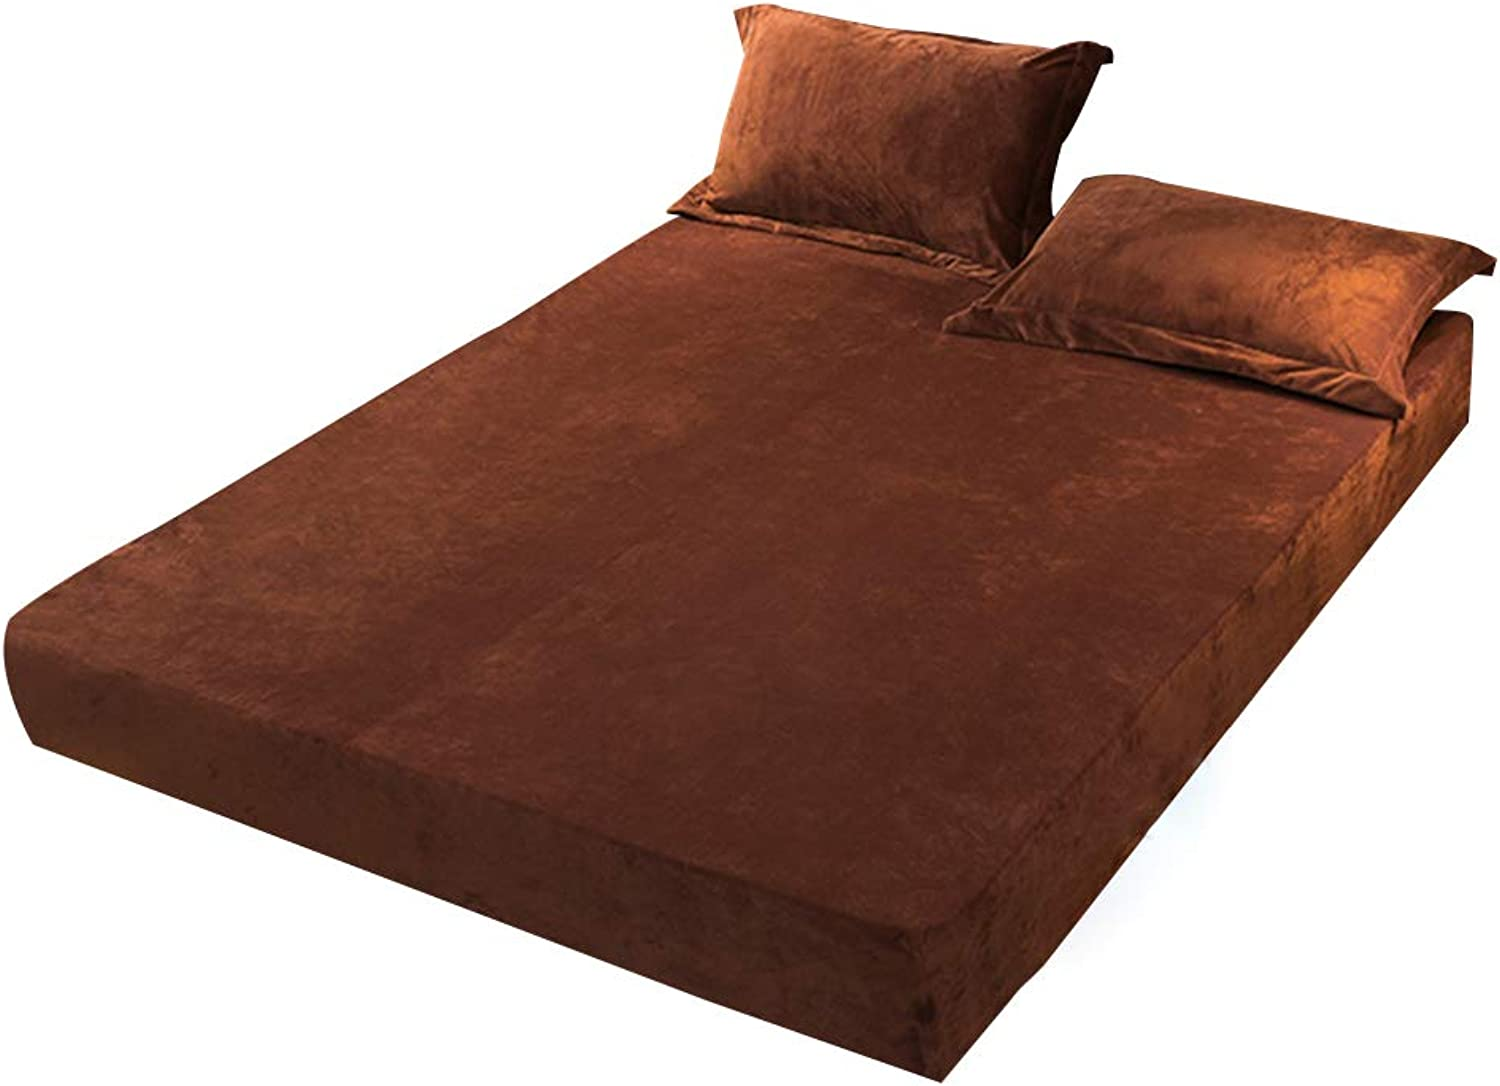 ZHAOHUI Mattress Predector Polyester Waterproof Breathable Keep Warm Soft Dust-Proof Antibacterial Comfortable, 3 colors, 6 Sizes (color   Brown, Size   200X220cm)